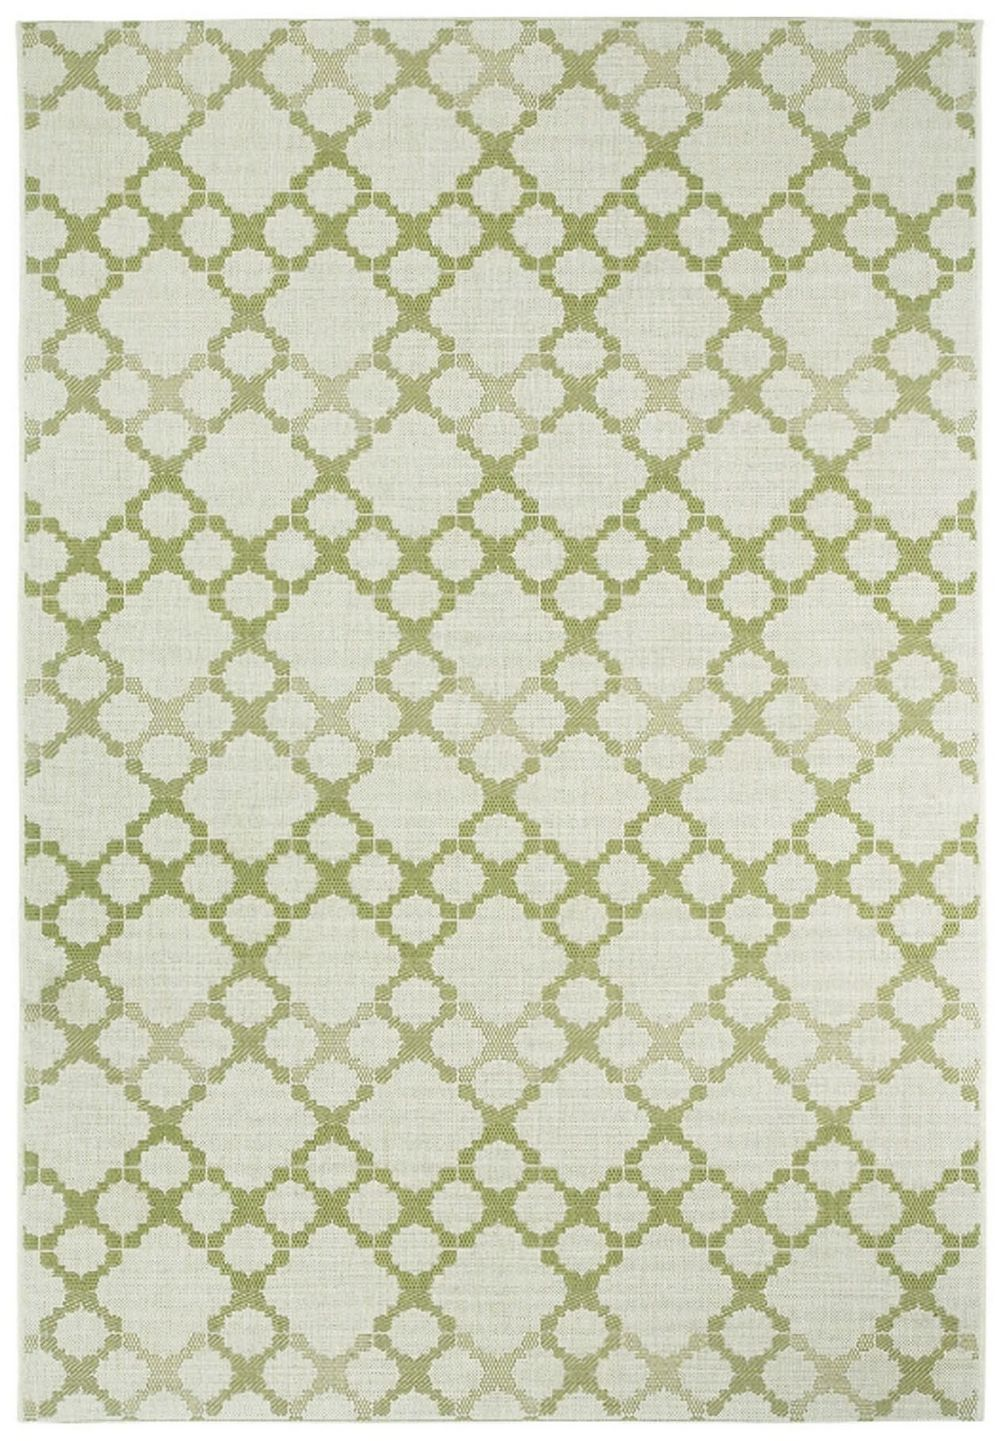 capel elsinore-santorini contemporary area rug collection